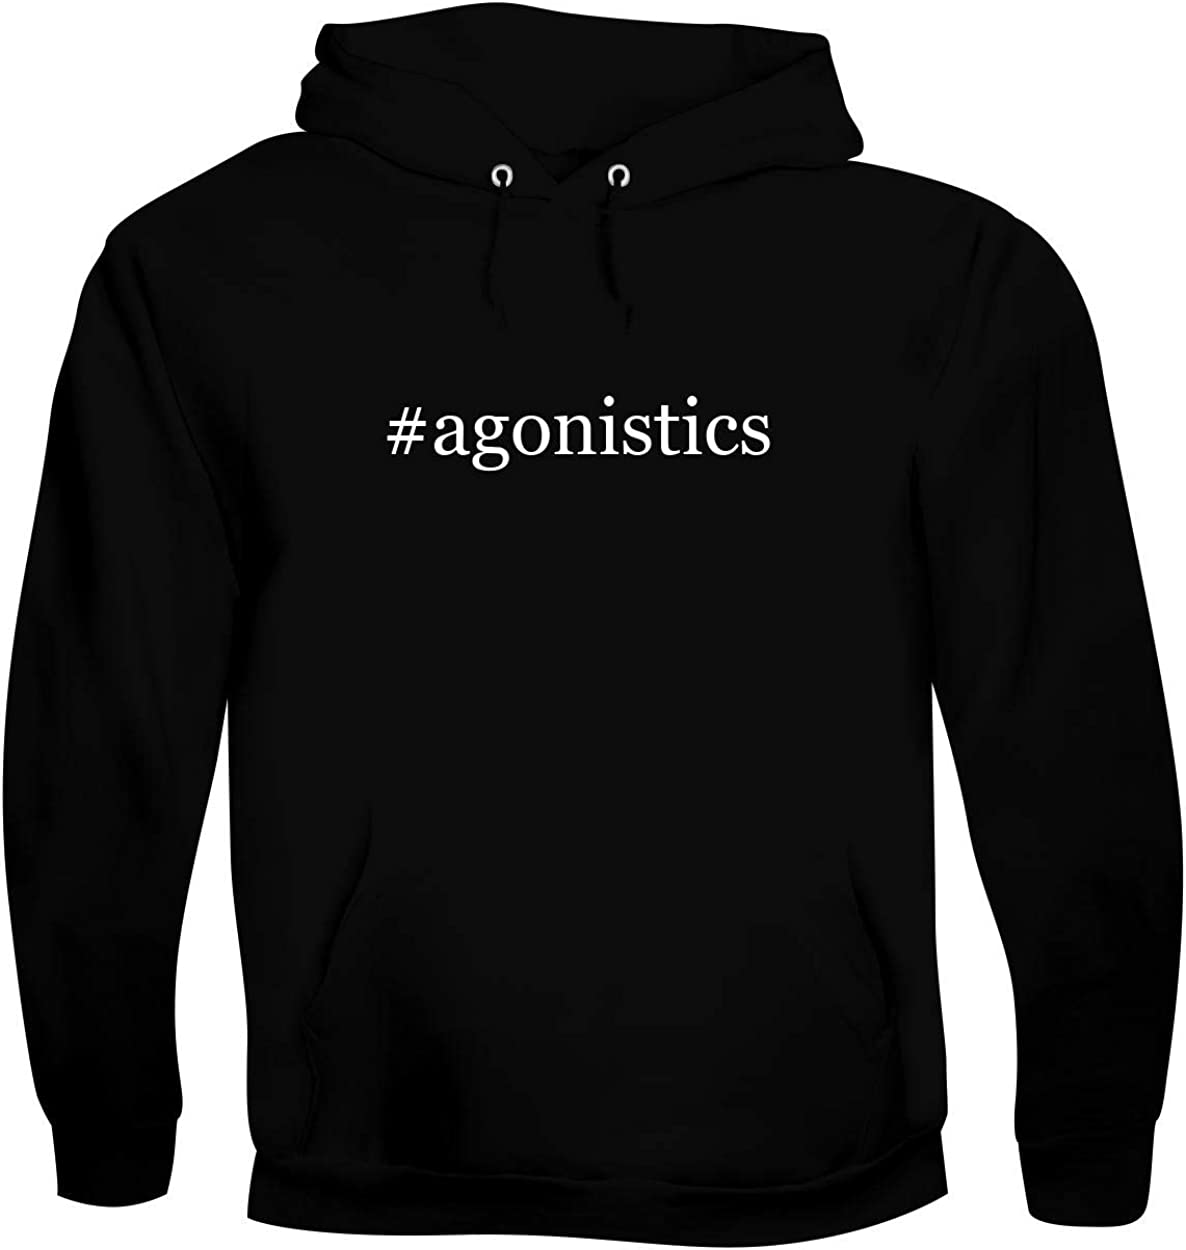 #agonistics - Men's Hashtag Soft & Comfortable Hoodie Sweatshirt Pullover 51j6erk%2BMHL